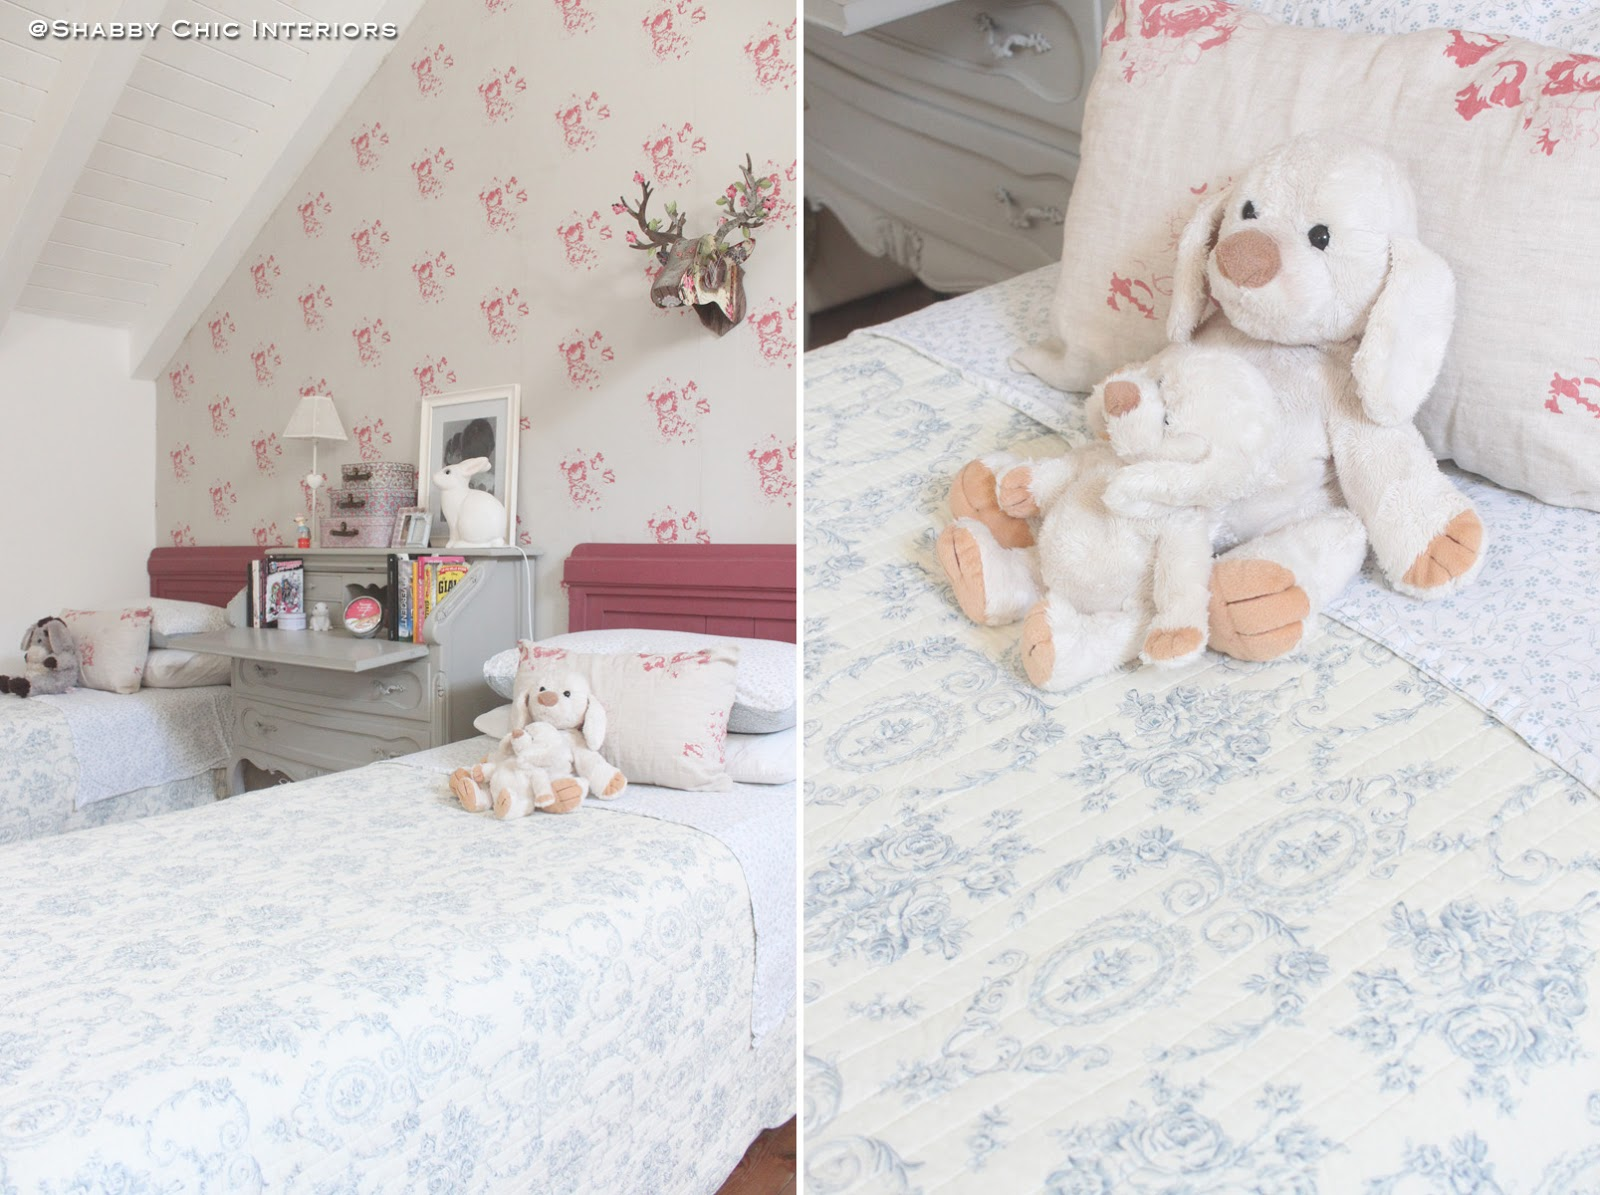 Boutis provenzale   shabby chic interiors